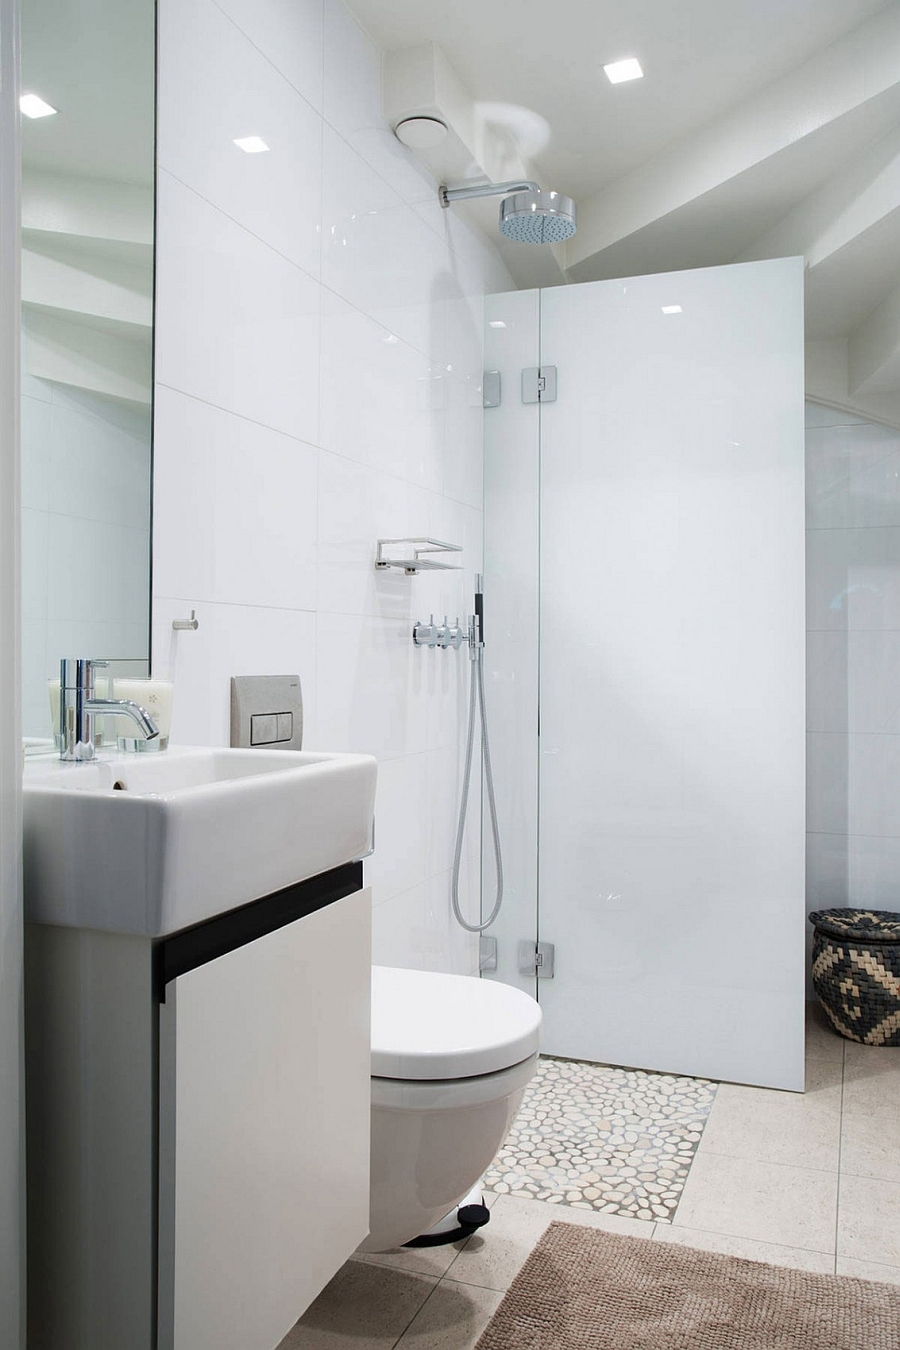 Small shower area in the white bathroom